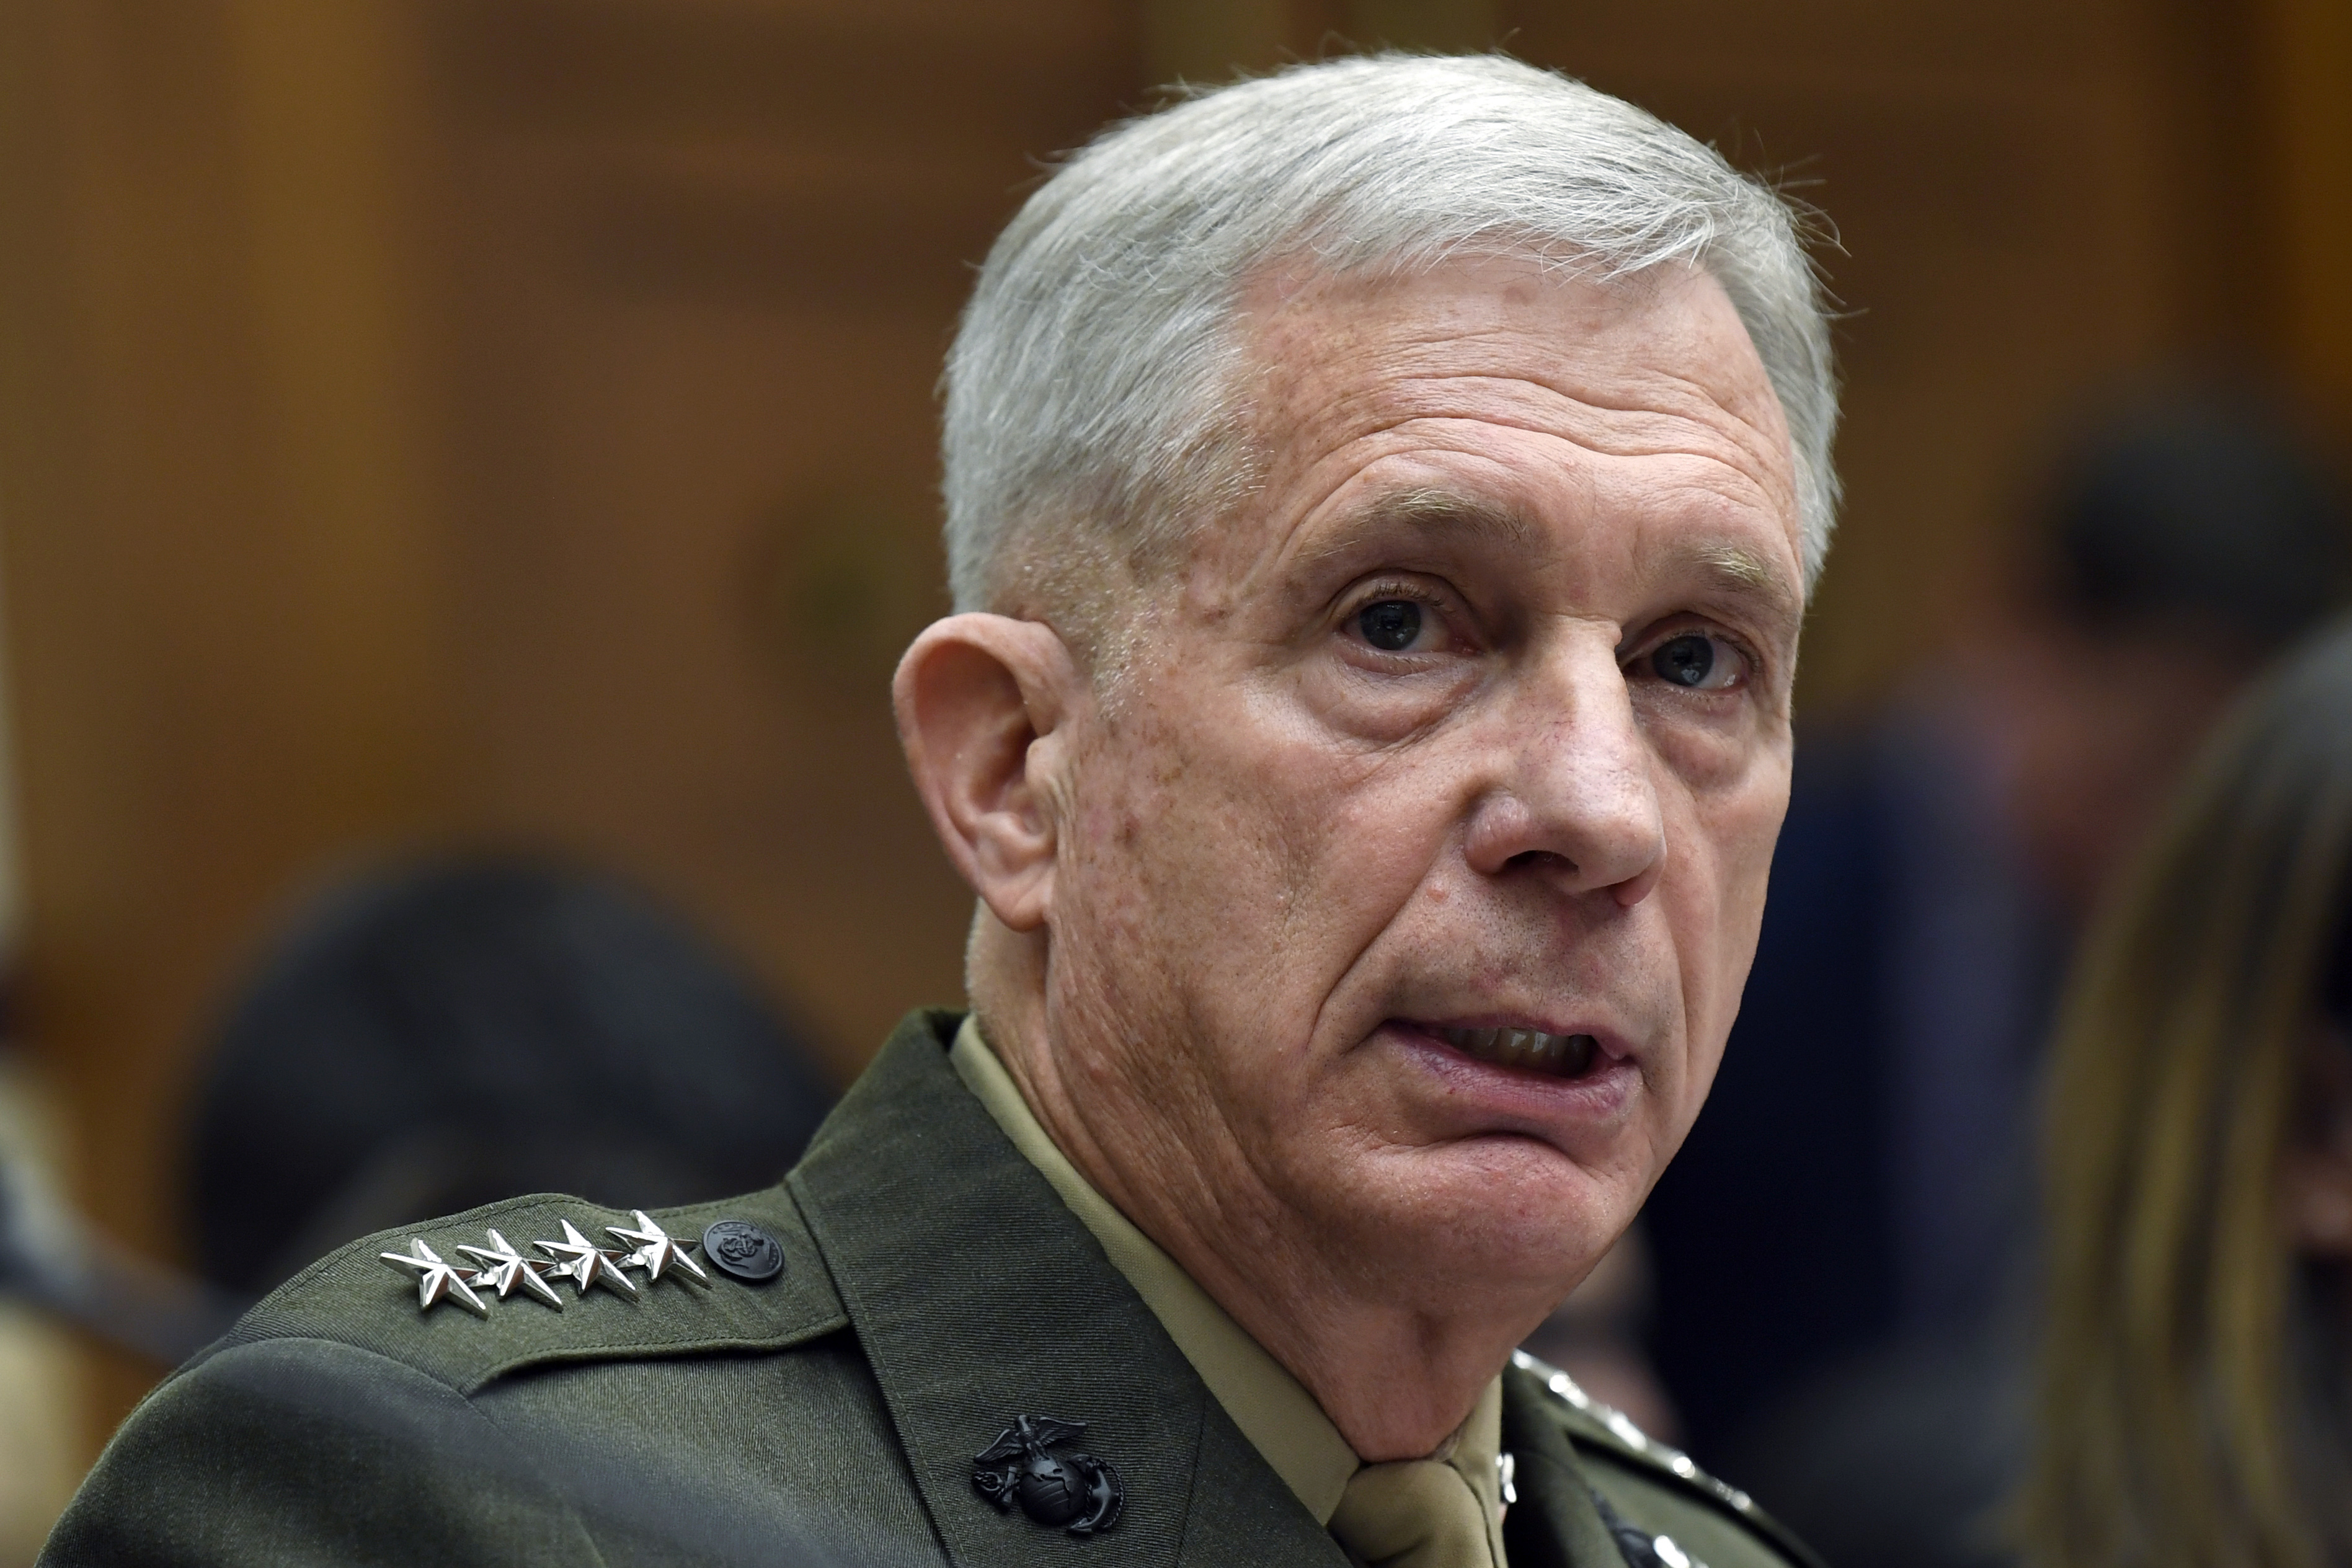 U.S. Africa Command chief meets with key leaders in Djibouti